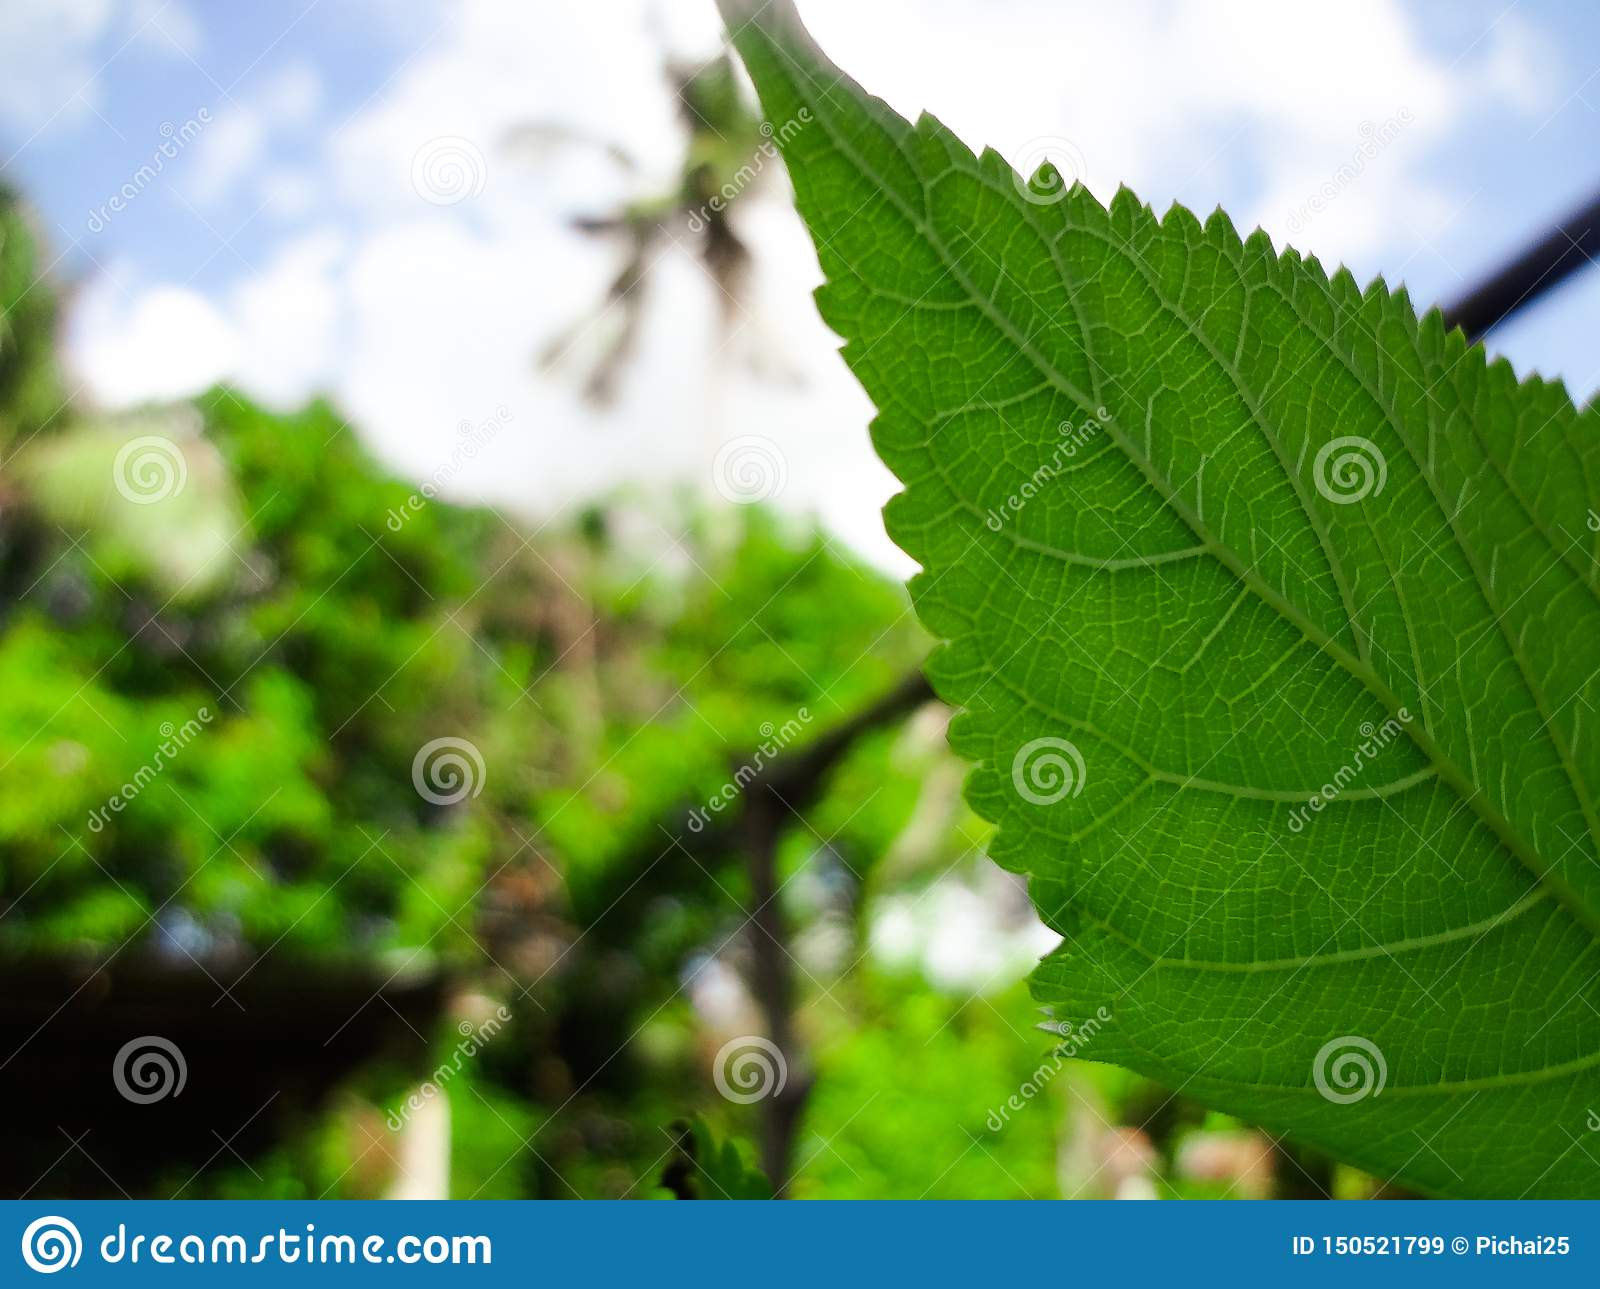 Closeup nature view of green leaf on blurred greenery background in garden with copy space using as background natural green